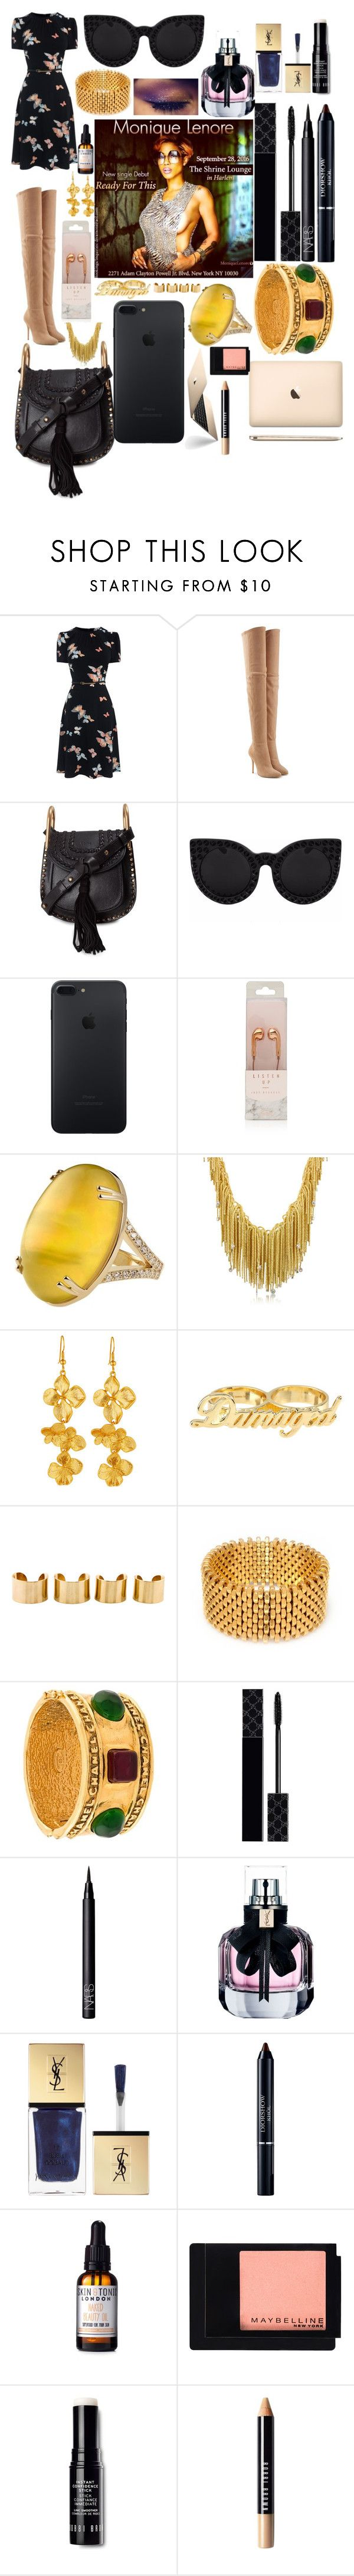 """Tonight I sing in Nyc at Shrine Harlem www.voiceboxcouture.com"" by voiceboxcouture ❤ liked on Polyvore featuring Balmain, Chloé, Orlando Orlandini, Kenneth Jay Lane, Maison Margiela, Alice Menter, Chanel, Gucci, NARS Cosmetics and Yves Saint Laurent"